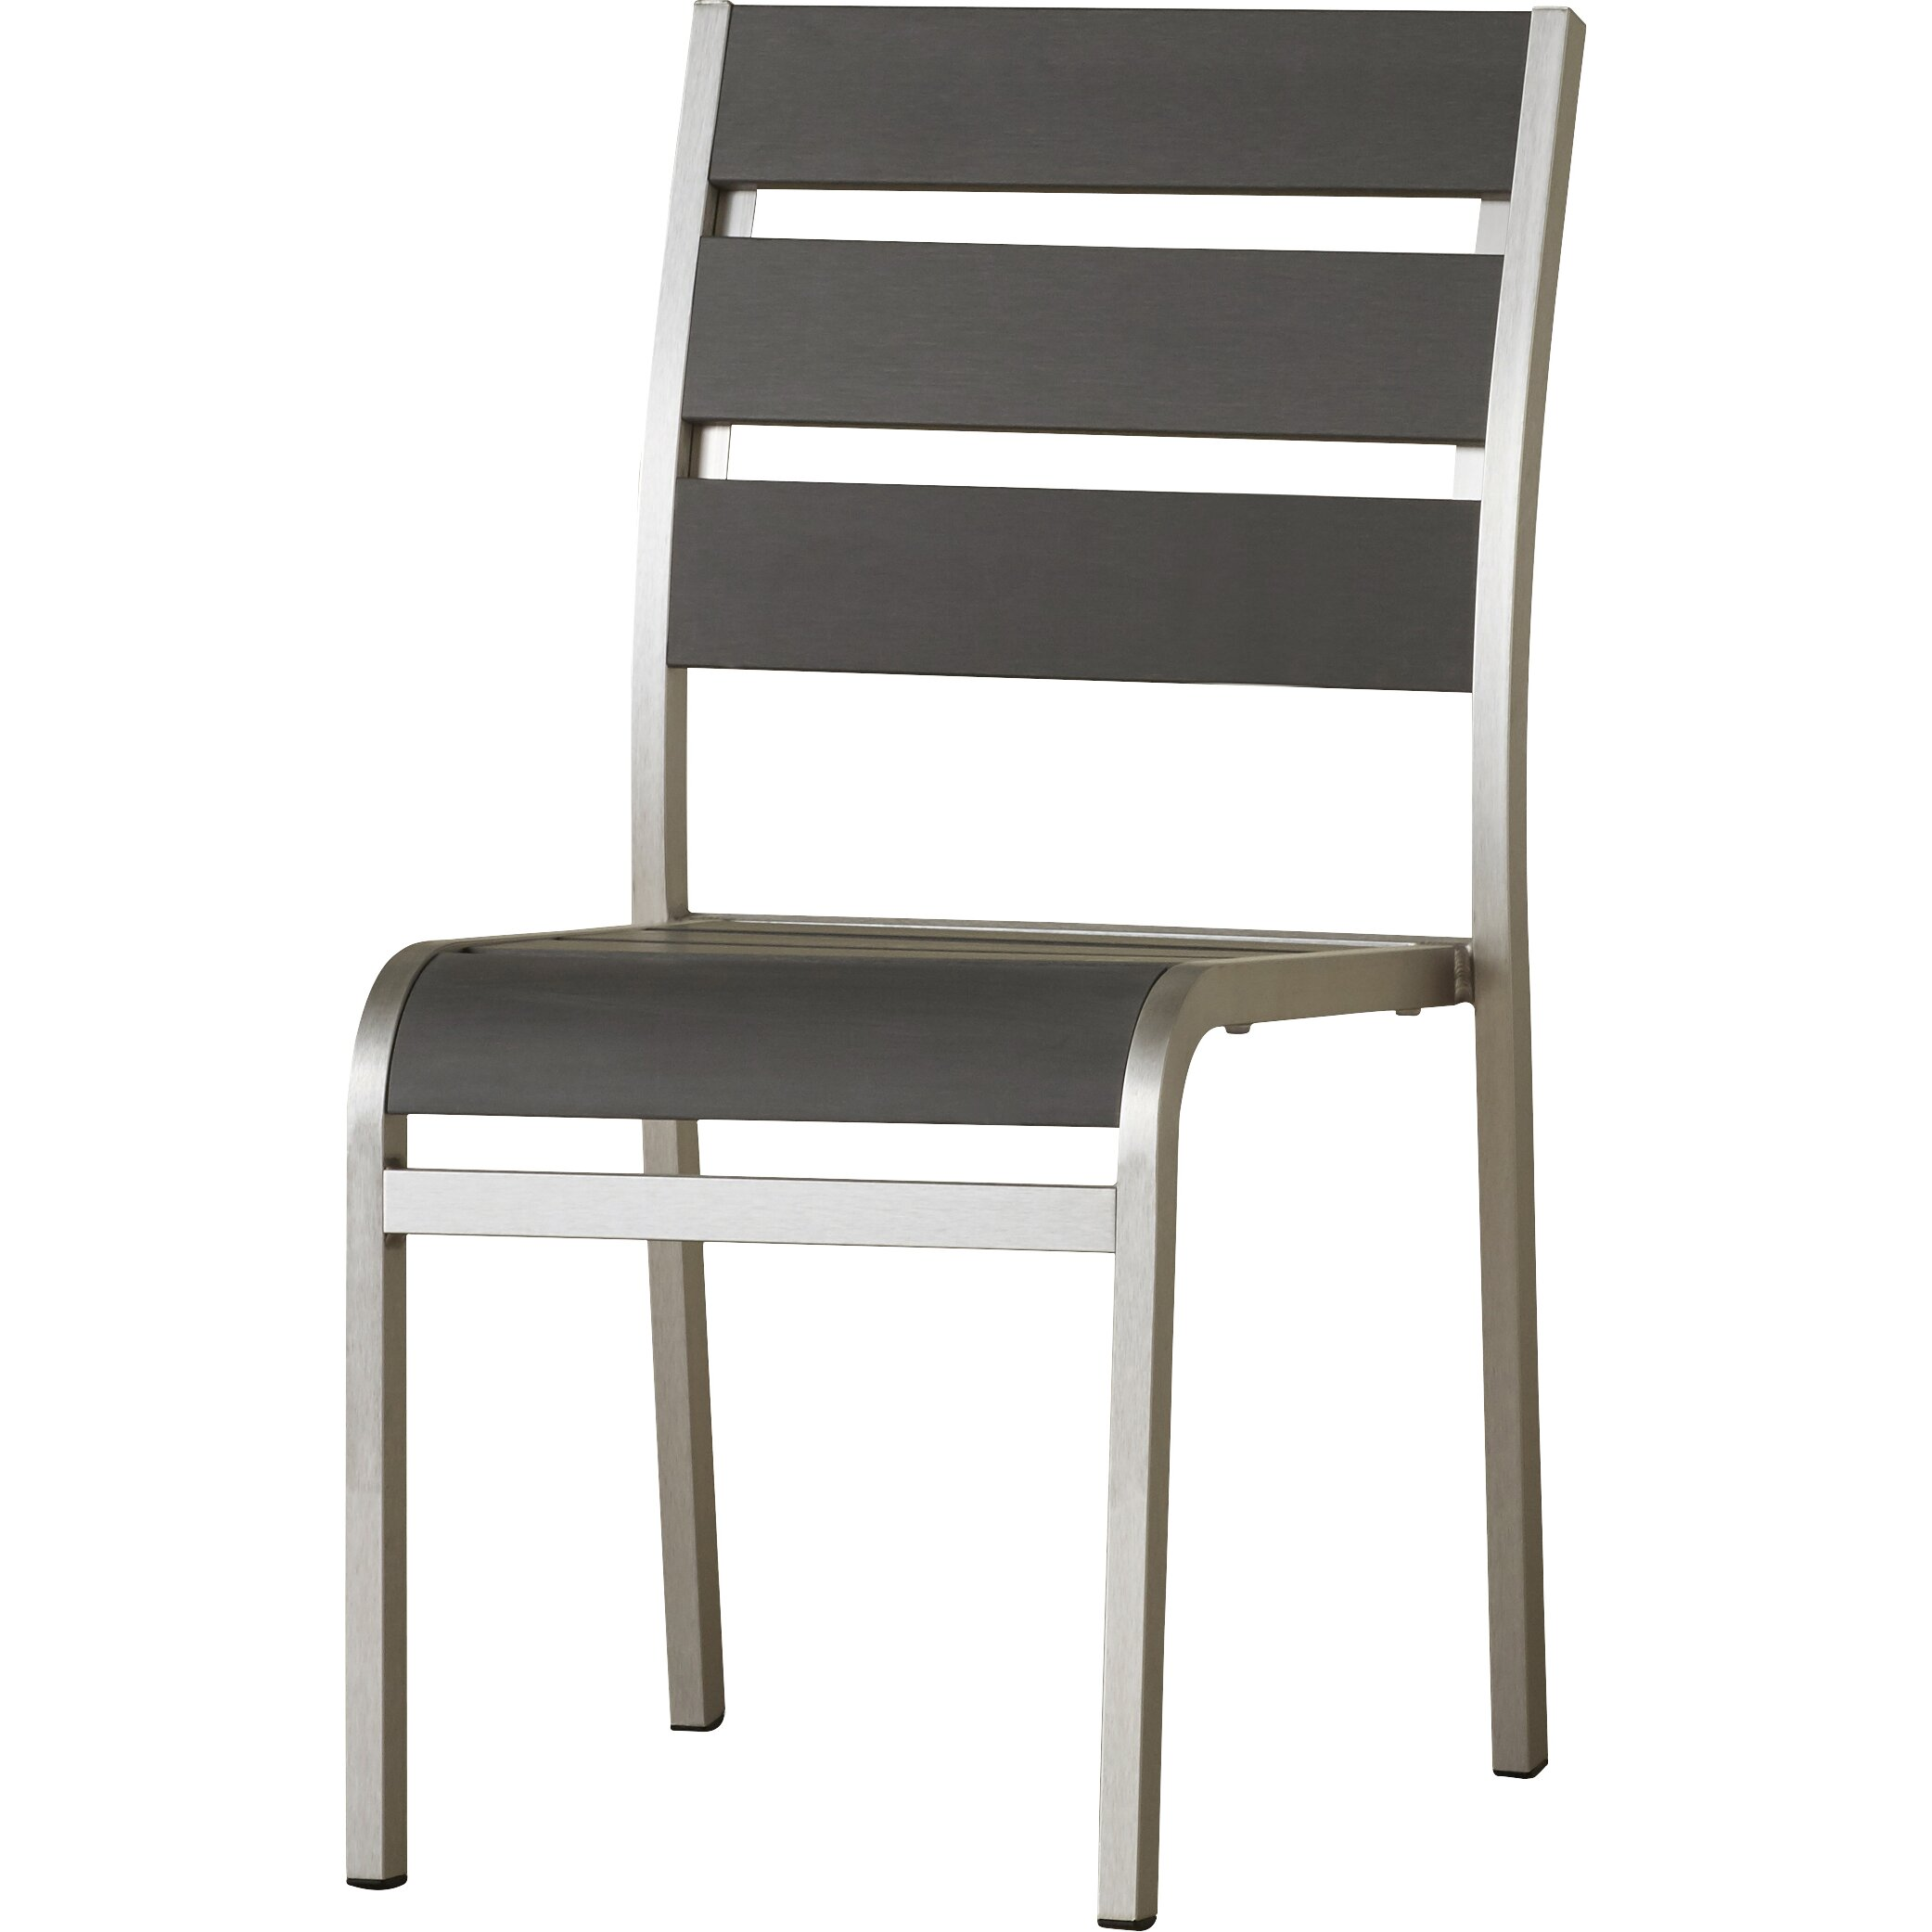 Allux Stackable Dining Side Chair Allux Stackable Dining Side Chair Viesso Allux Stackable